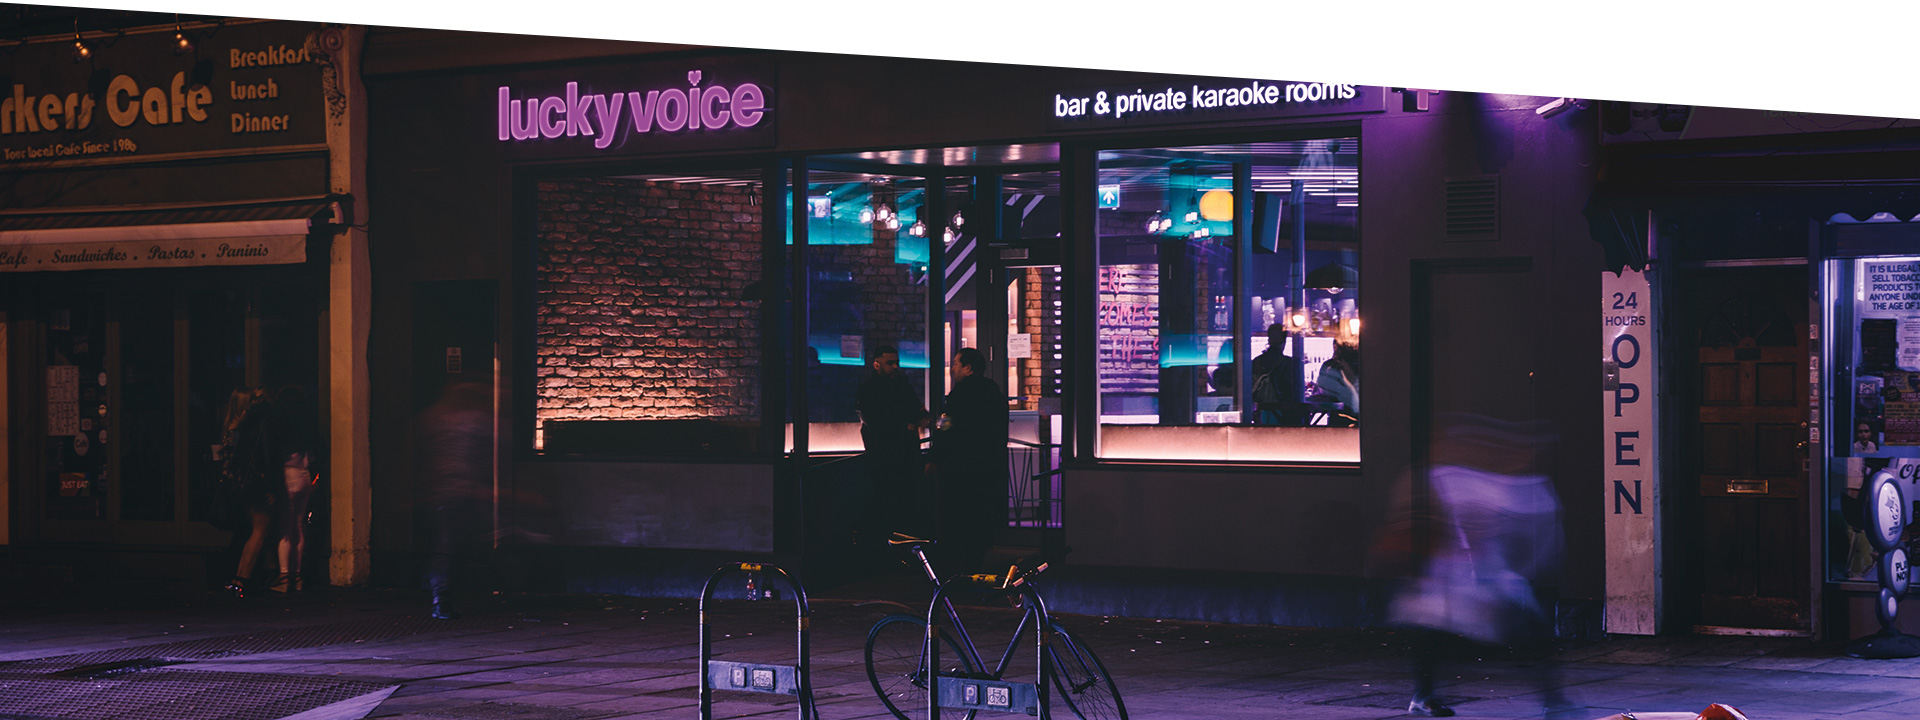 Private Karaoke Rooms London